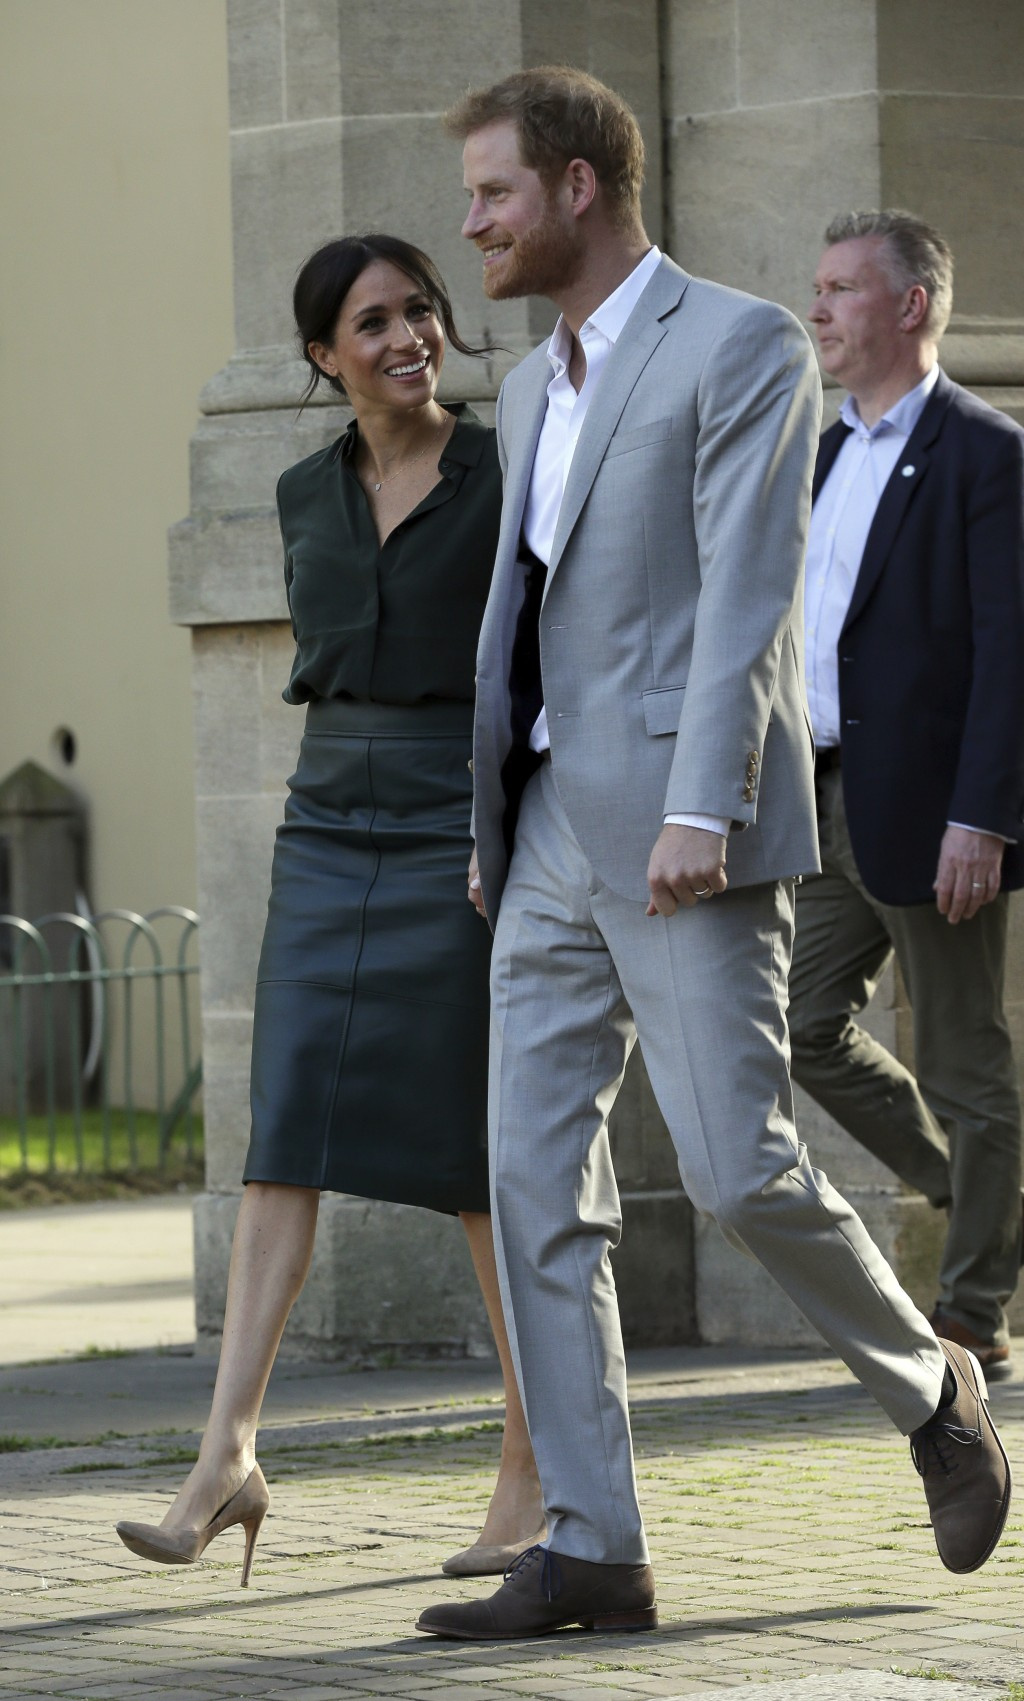 FILE - In this Wednesday, Oct. 3, 2018 file photo, Britain's Prince Harry, right, and Meghan, Duchess of Sussex visit the Pavilion Building in Brighto